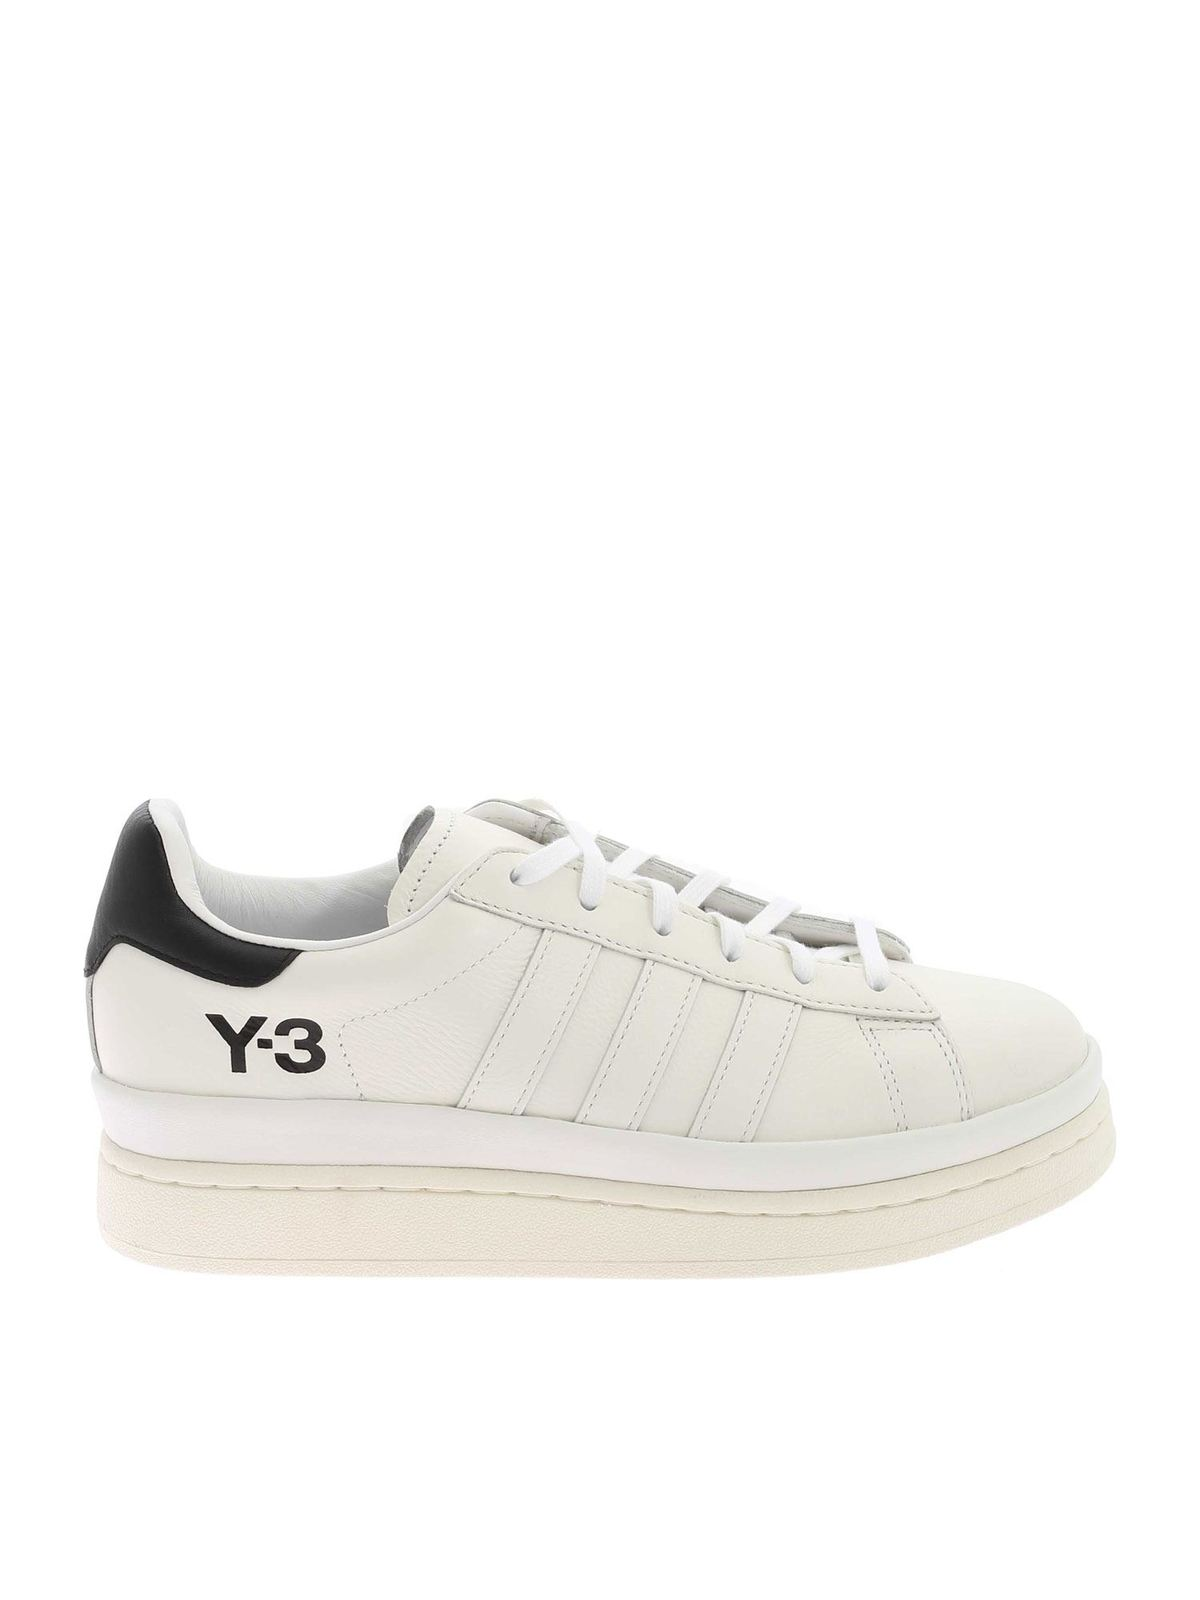 Y-3 SNEAKERS HICHO IN WHITE